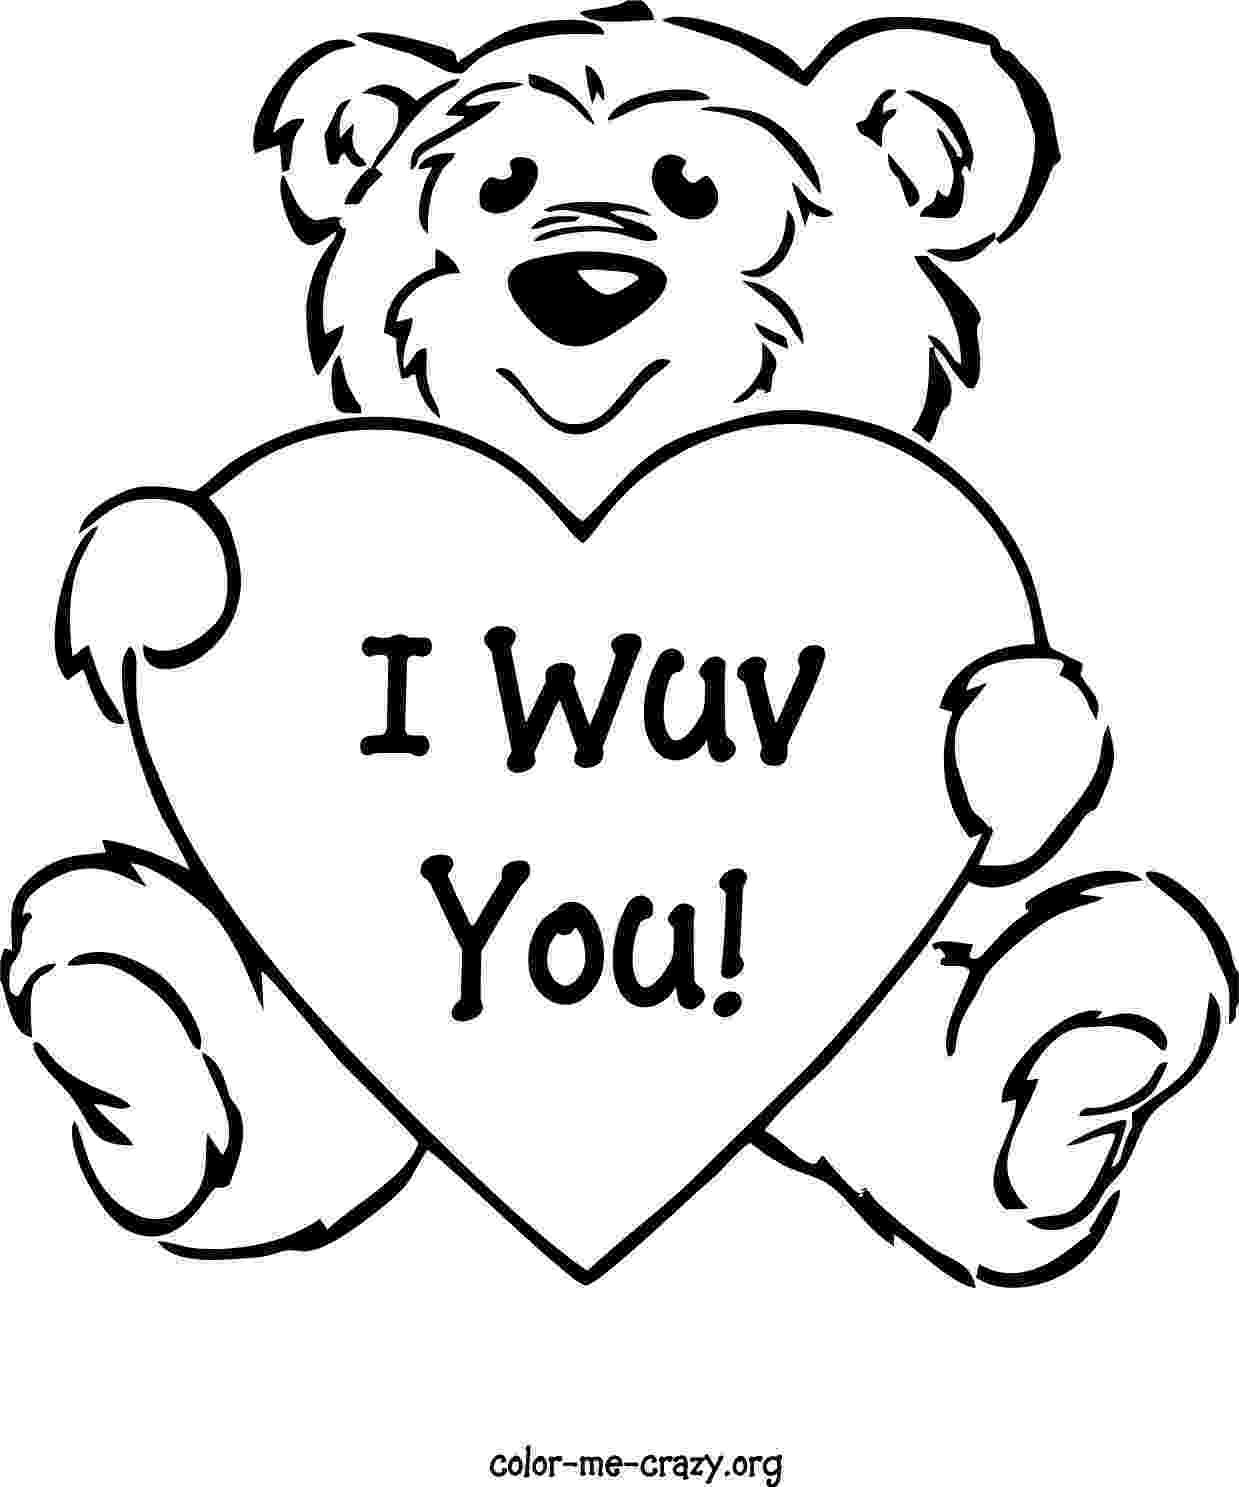 valentines day coloring sheets colormecrazyorg valentine coloring pages coloring day valentines sheets